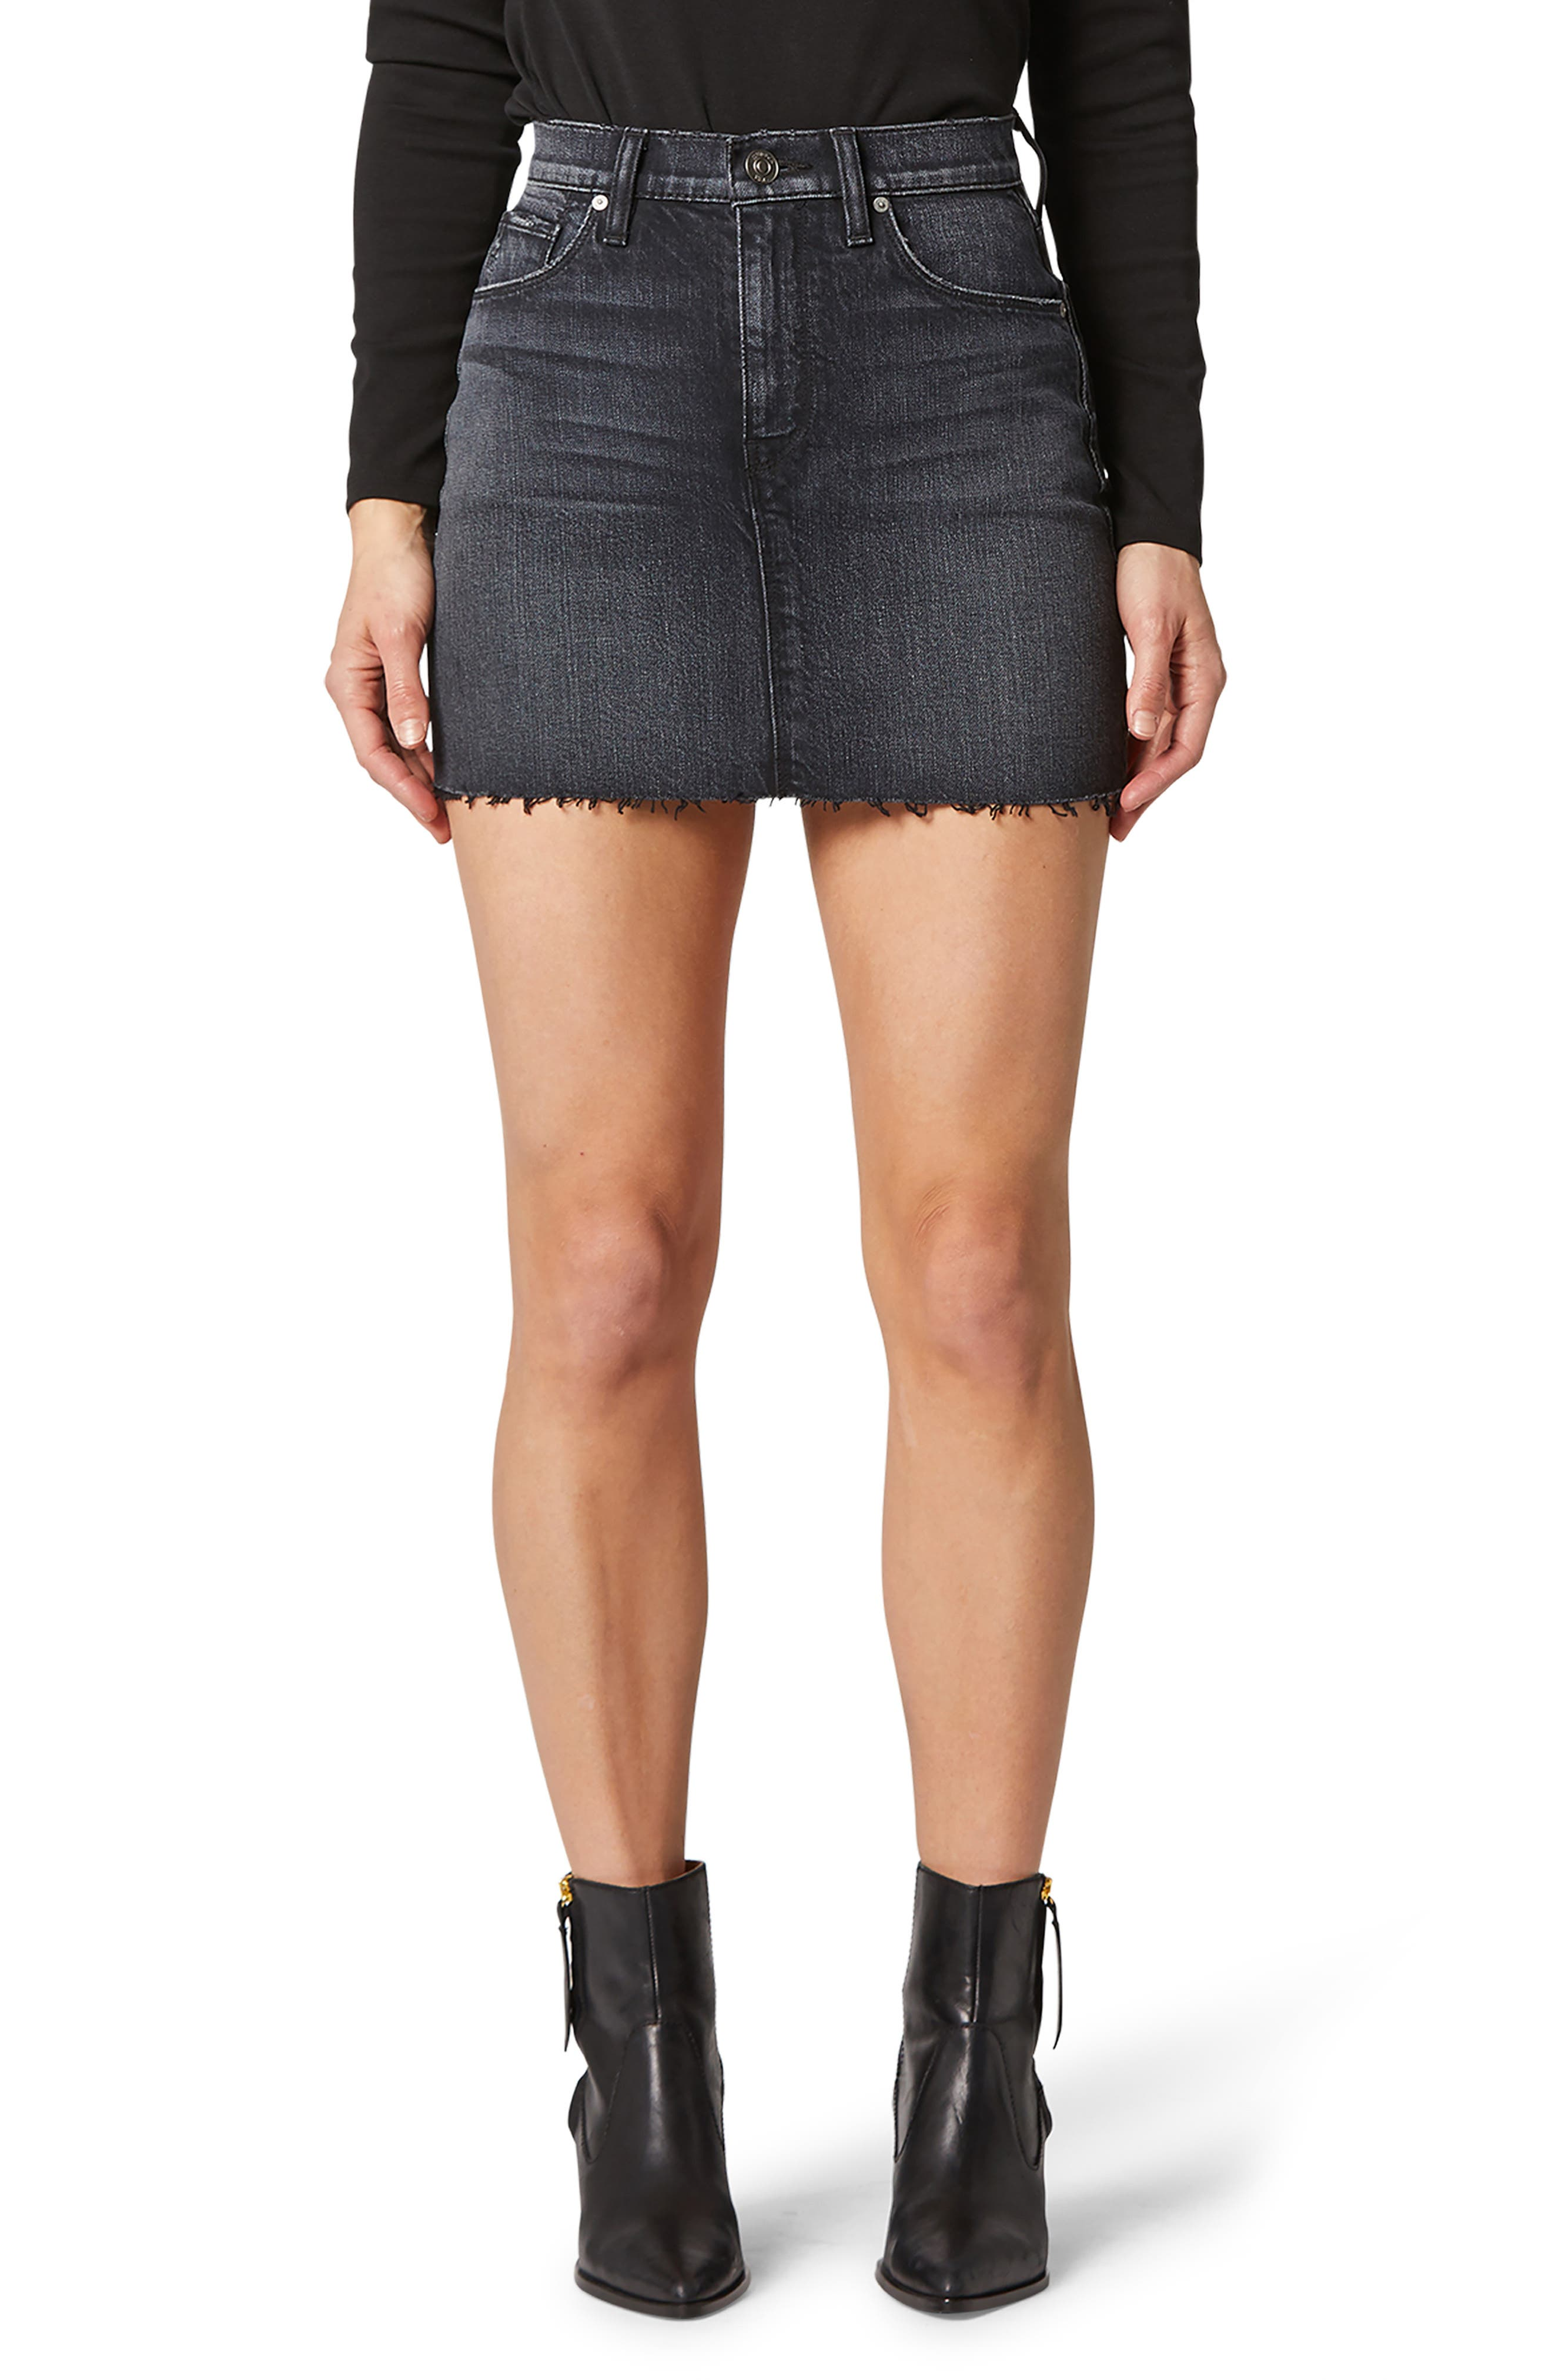 This edgy cutoff mini earns big style points when taking a daytime stroll or enjoying a night on the town. Style Name: Hudson Jeans The Viper Cutoff Denim Miniskirt. Style Number: 6011125. Available in stores.